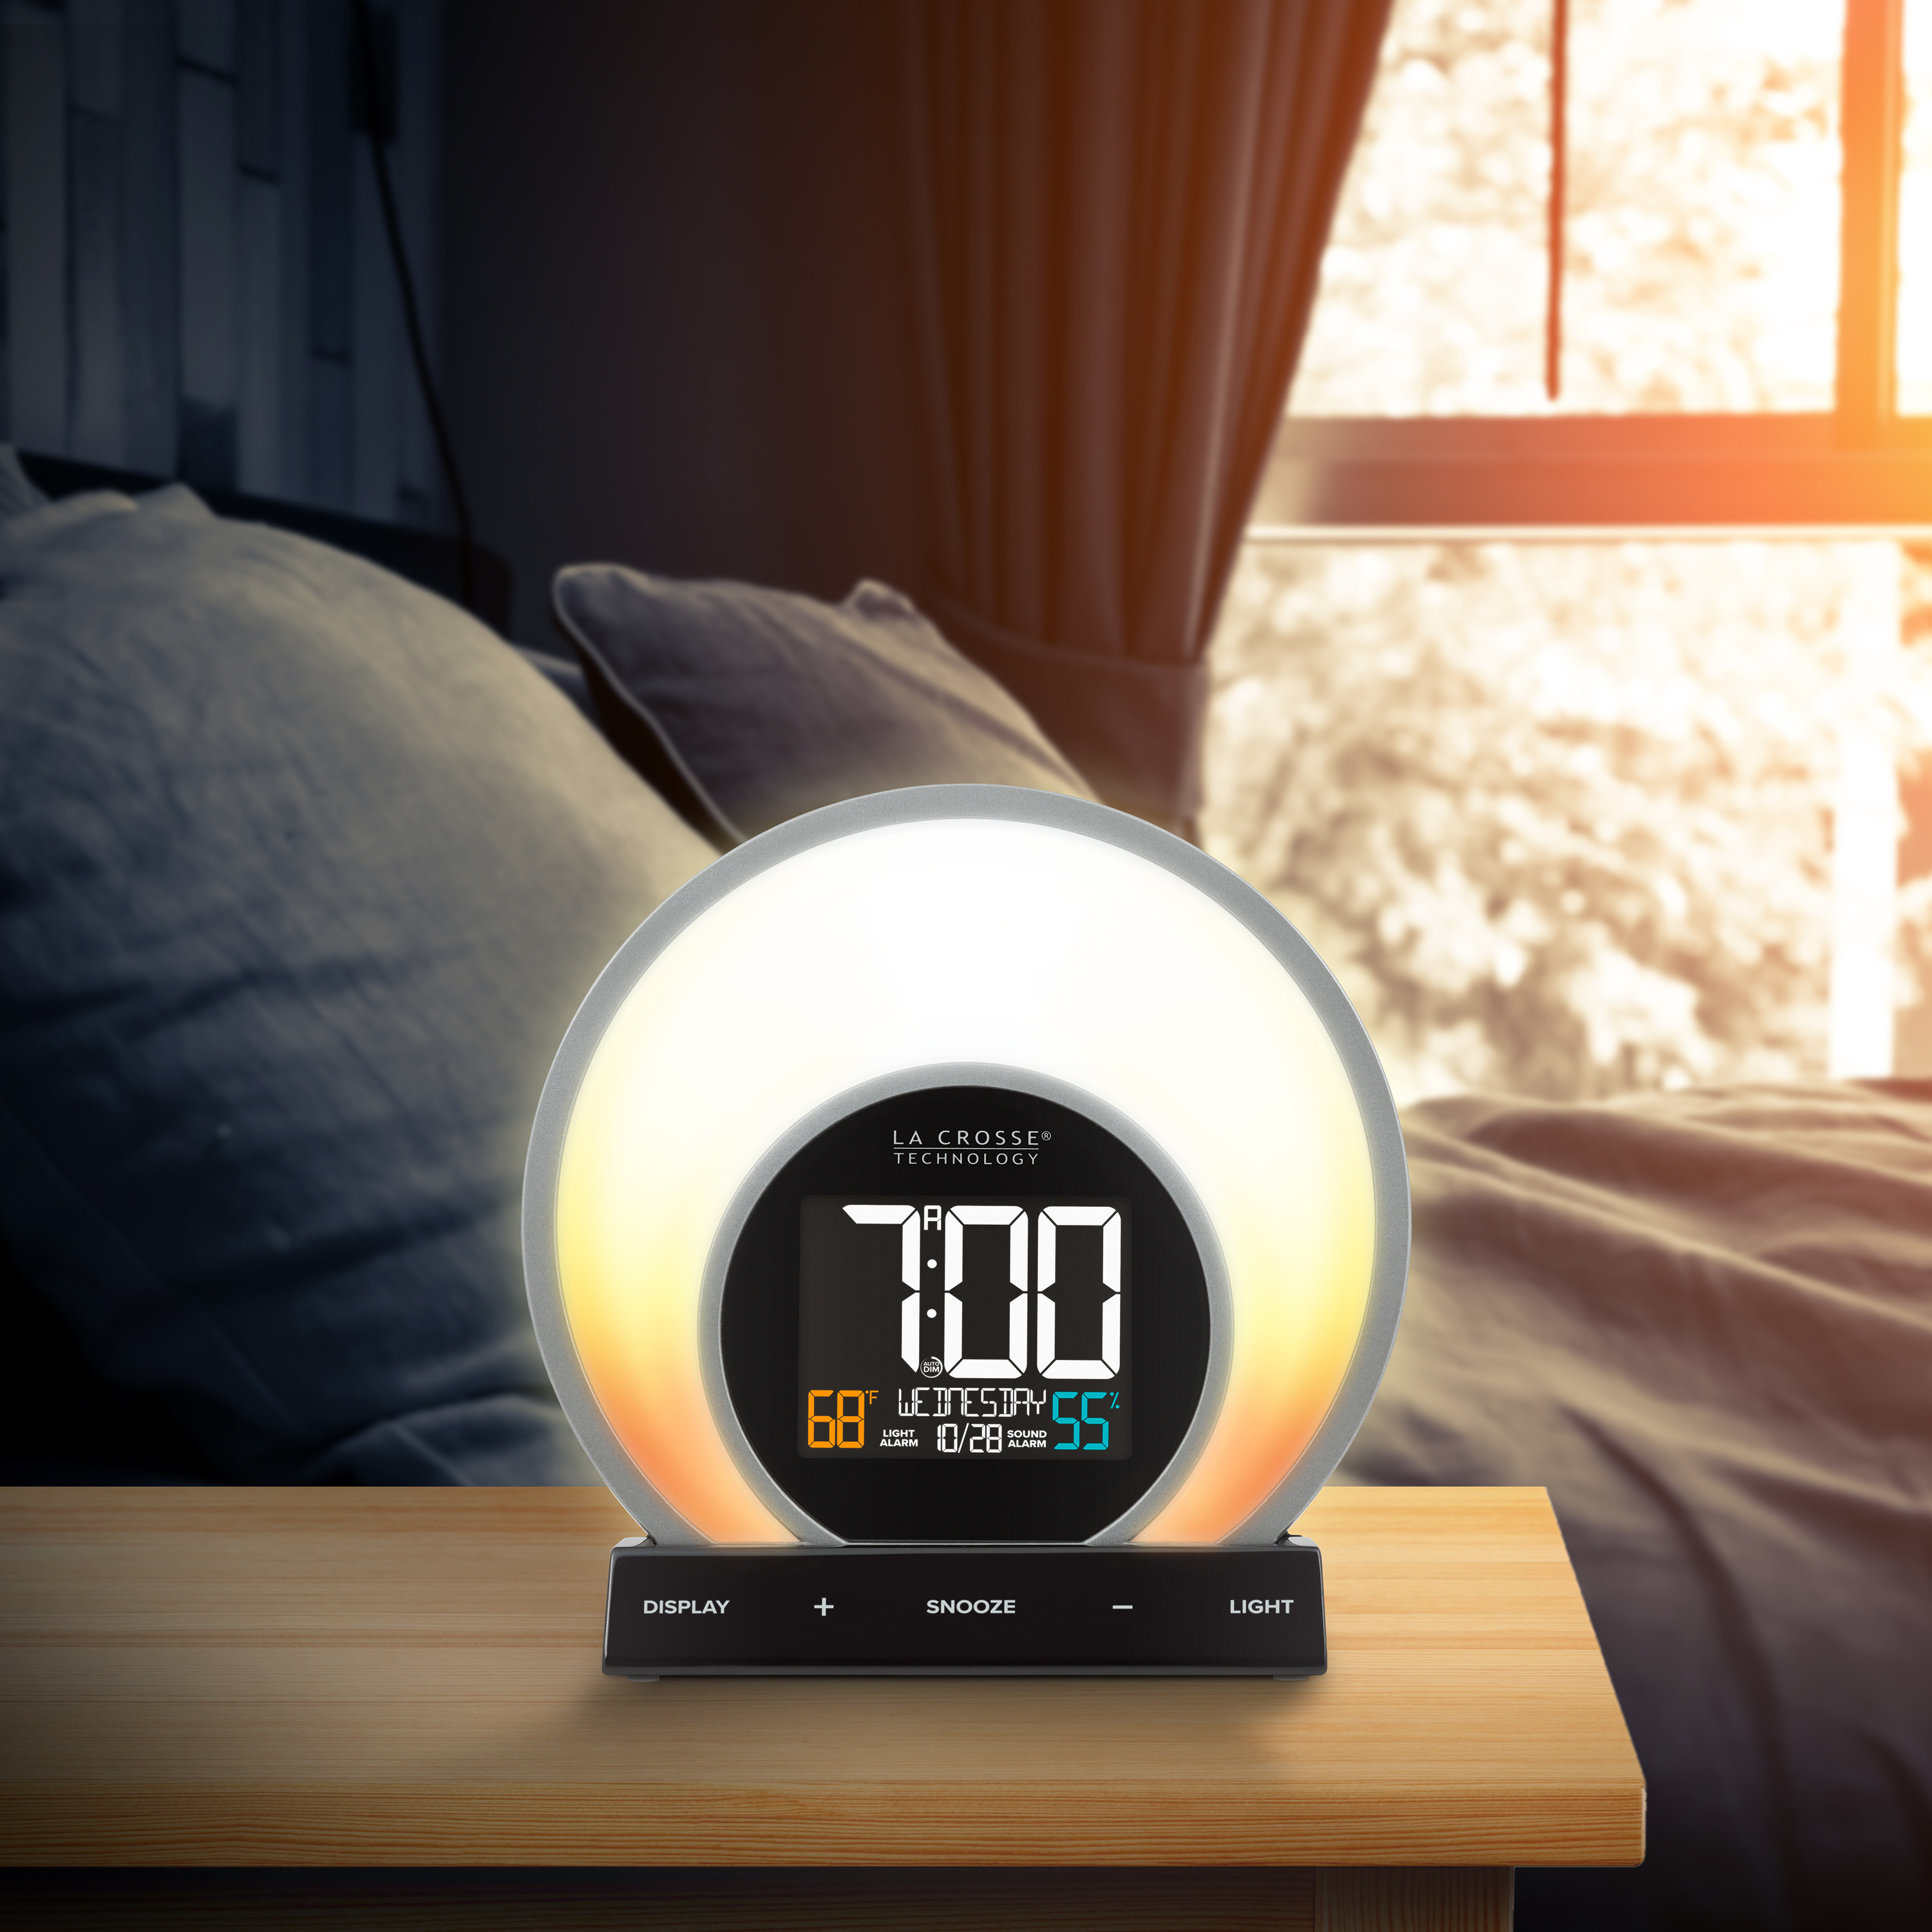 The alarm clock with a glow